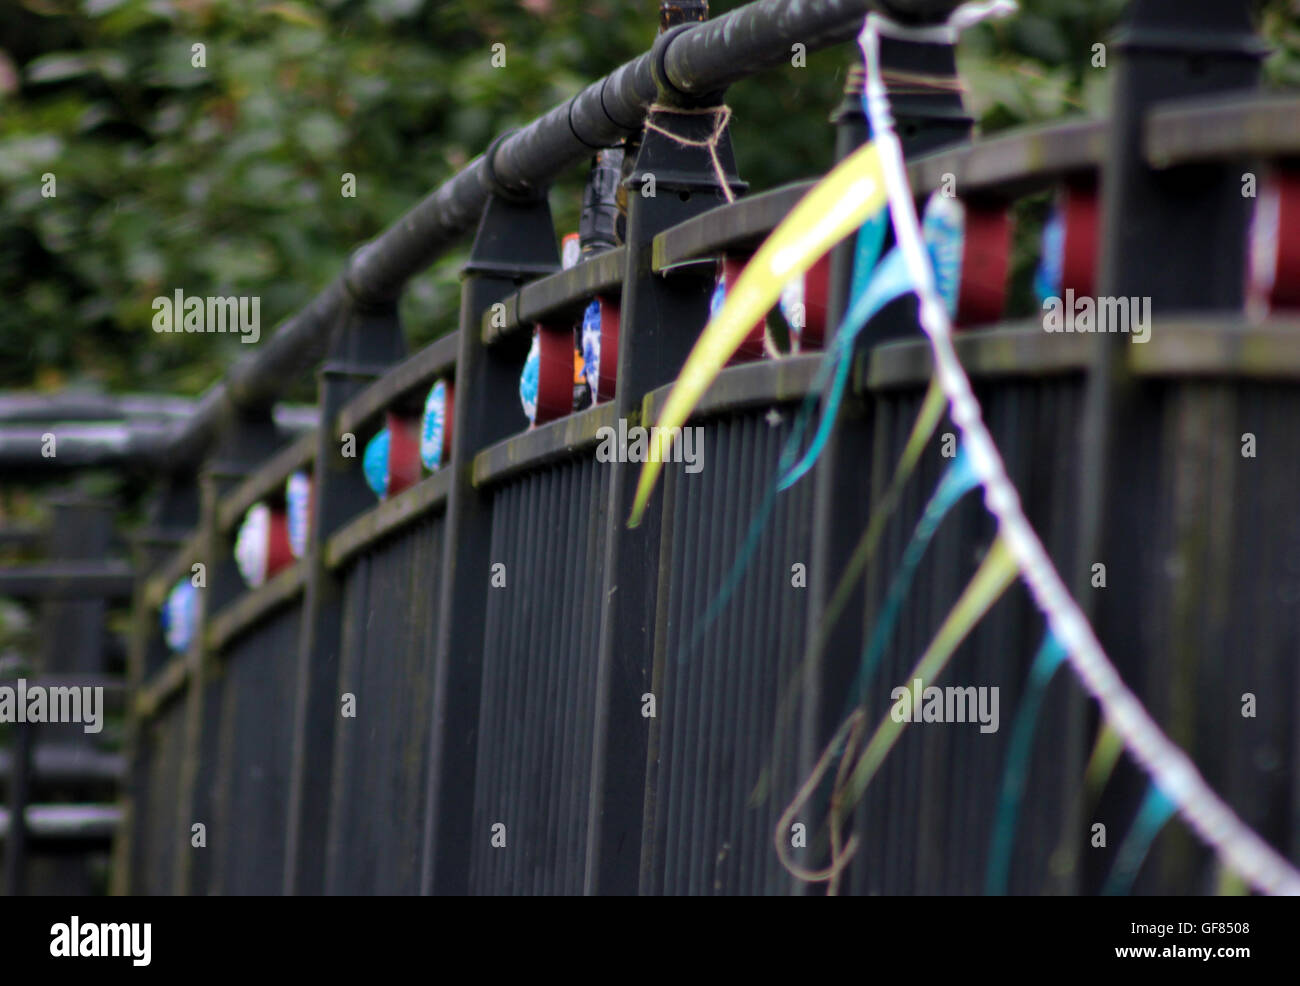 Crochet canal wheels and bunting attached to a foot bridge over the Leeds and Liverpool canal in Blackburn Lancashire. - Stock Image